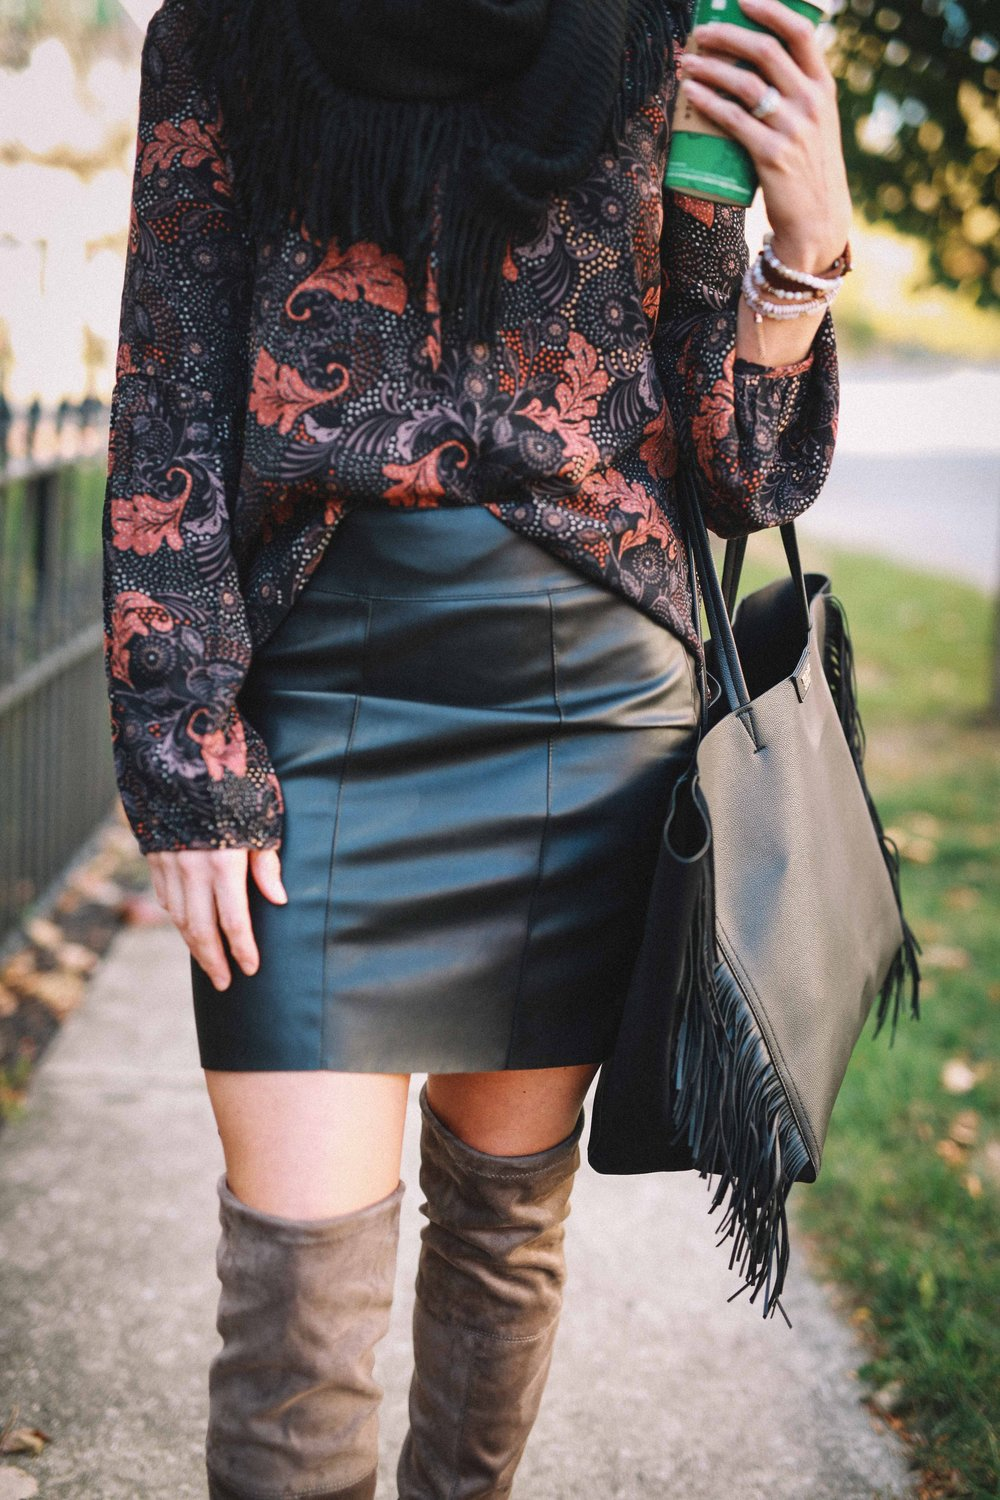 Faux Leather Skirt  HERE  // Top  HERE  // Shawl  HERE  // Bag  HERE  //  HERE